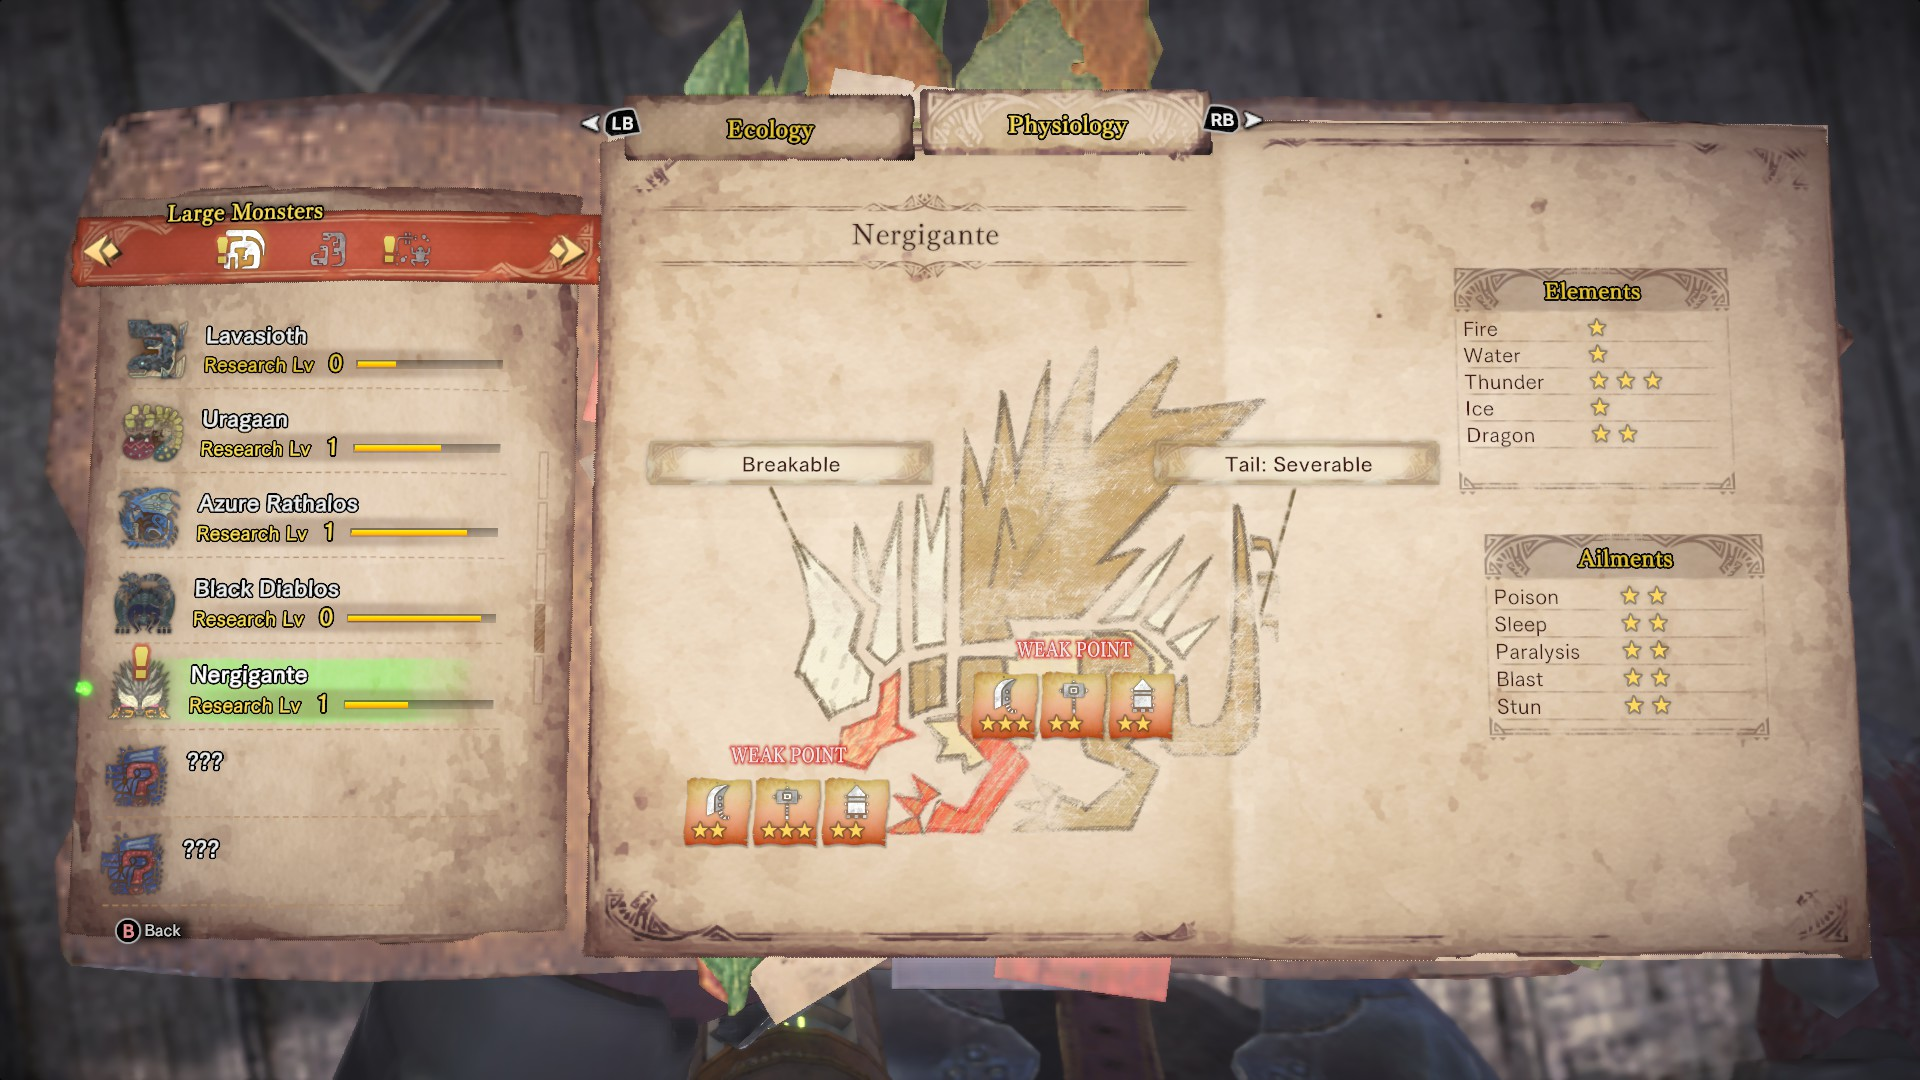 Nergigante's entry in the monster field guide.